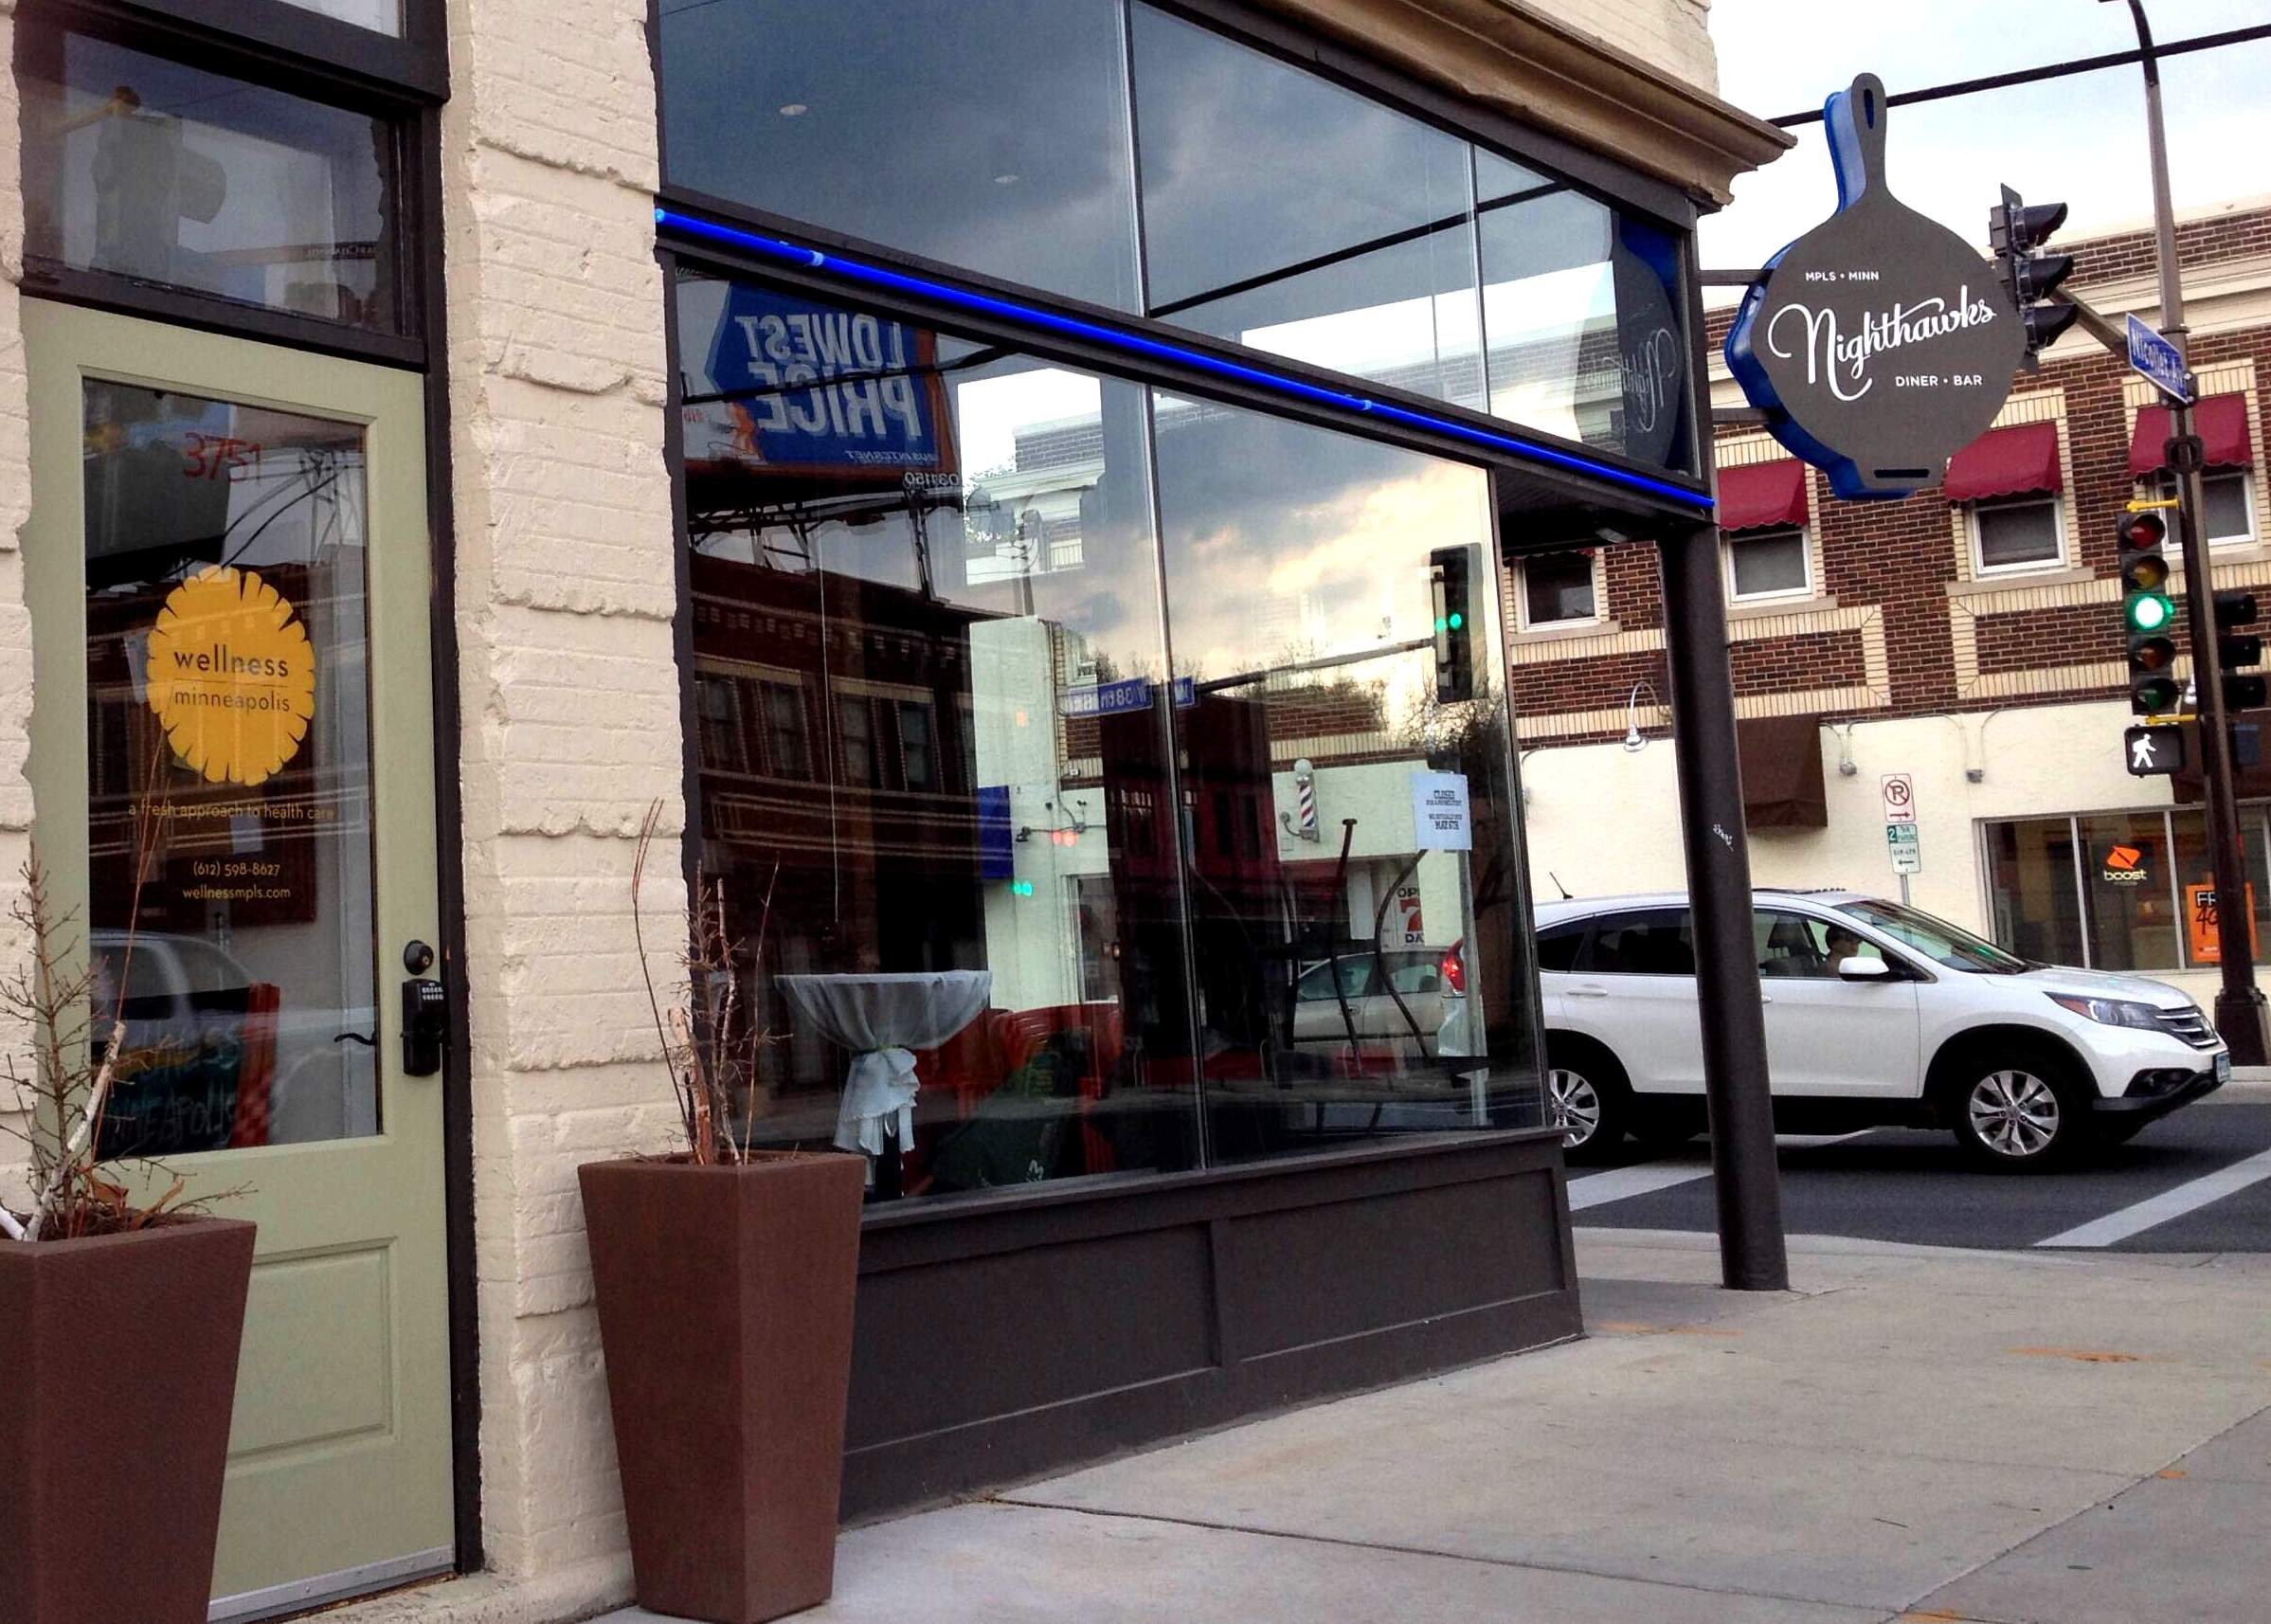 With Nighthawks and others, this is the neighborhood the foodies loved in 2015.